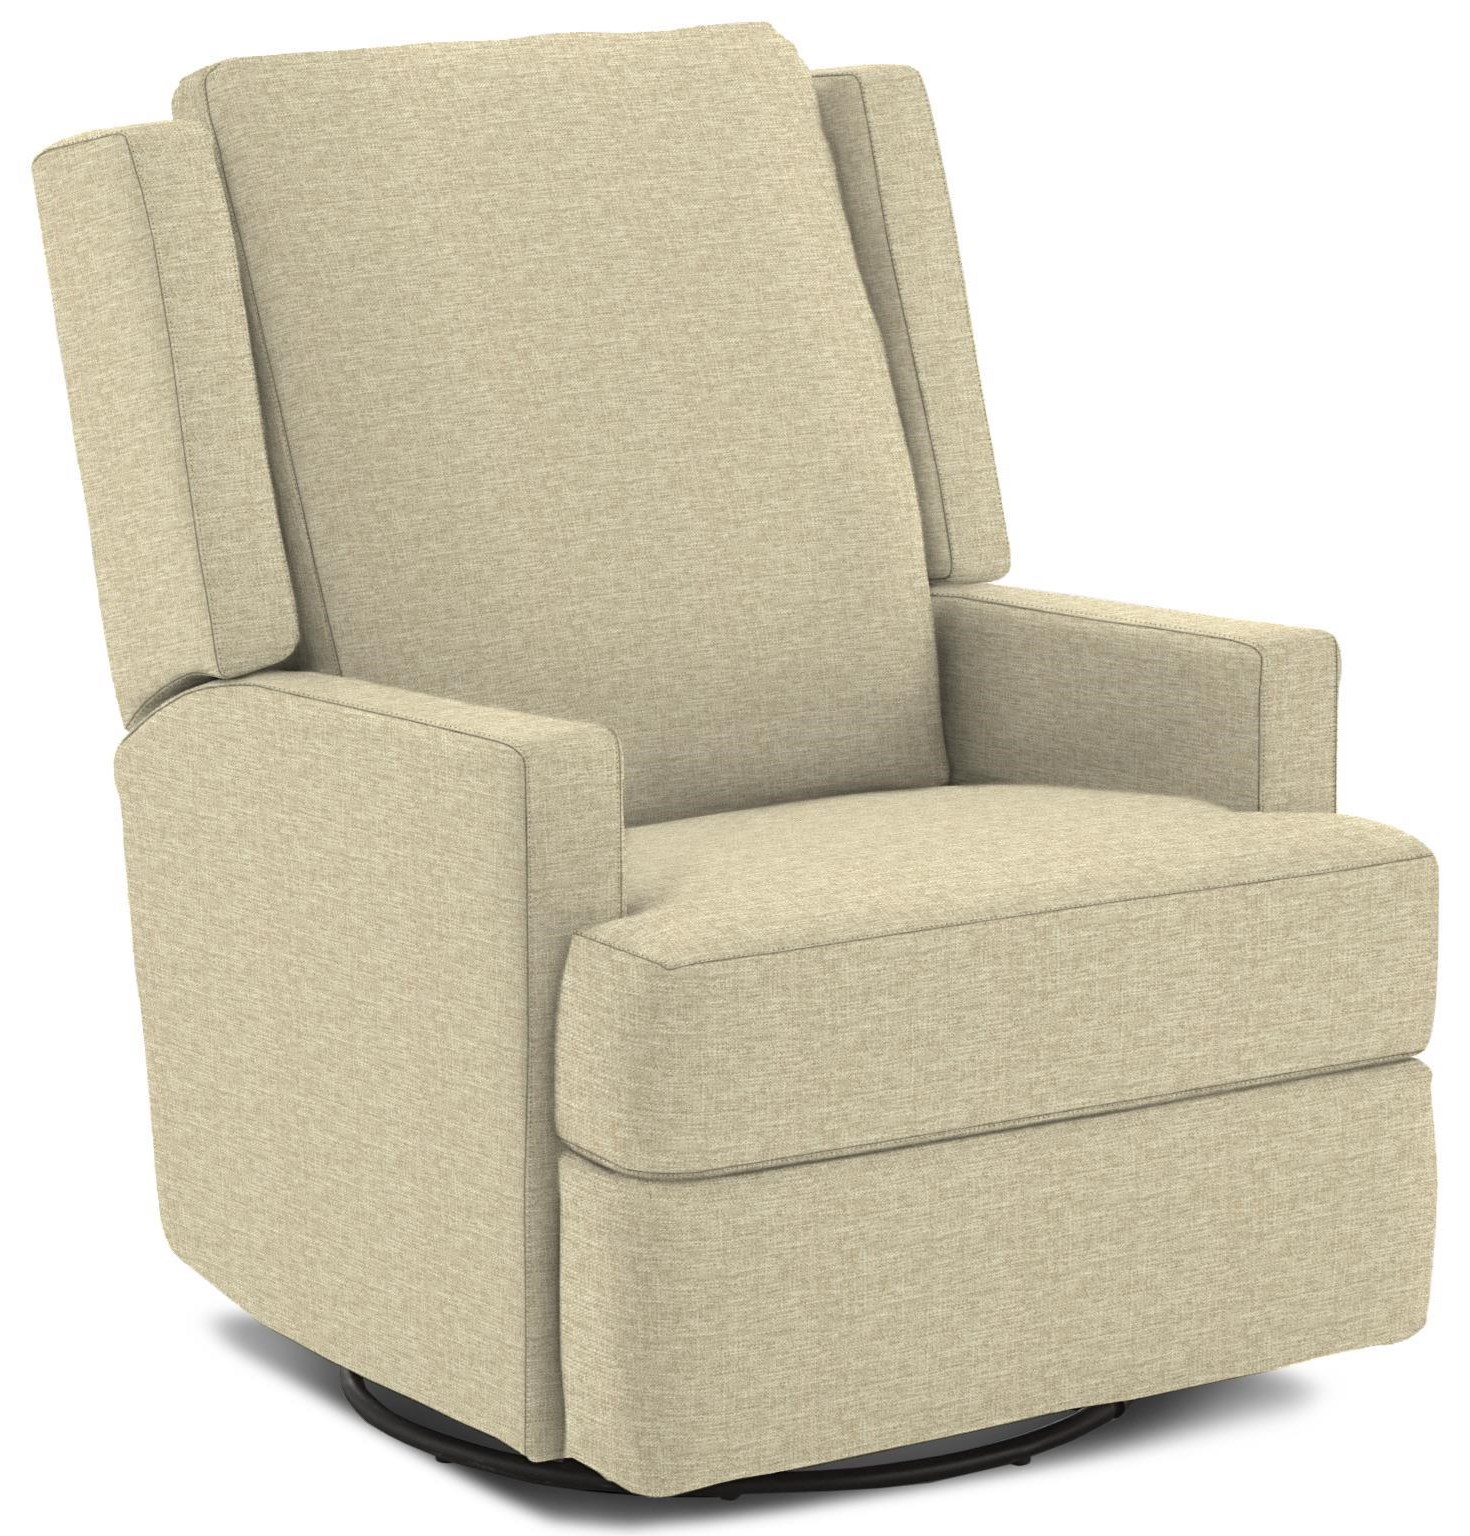 Allison Swivel Gliding Recliner by Best Home Furnishings at Crowley Furniture & Mattress